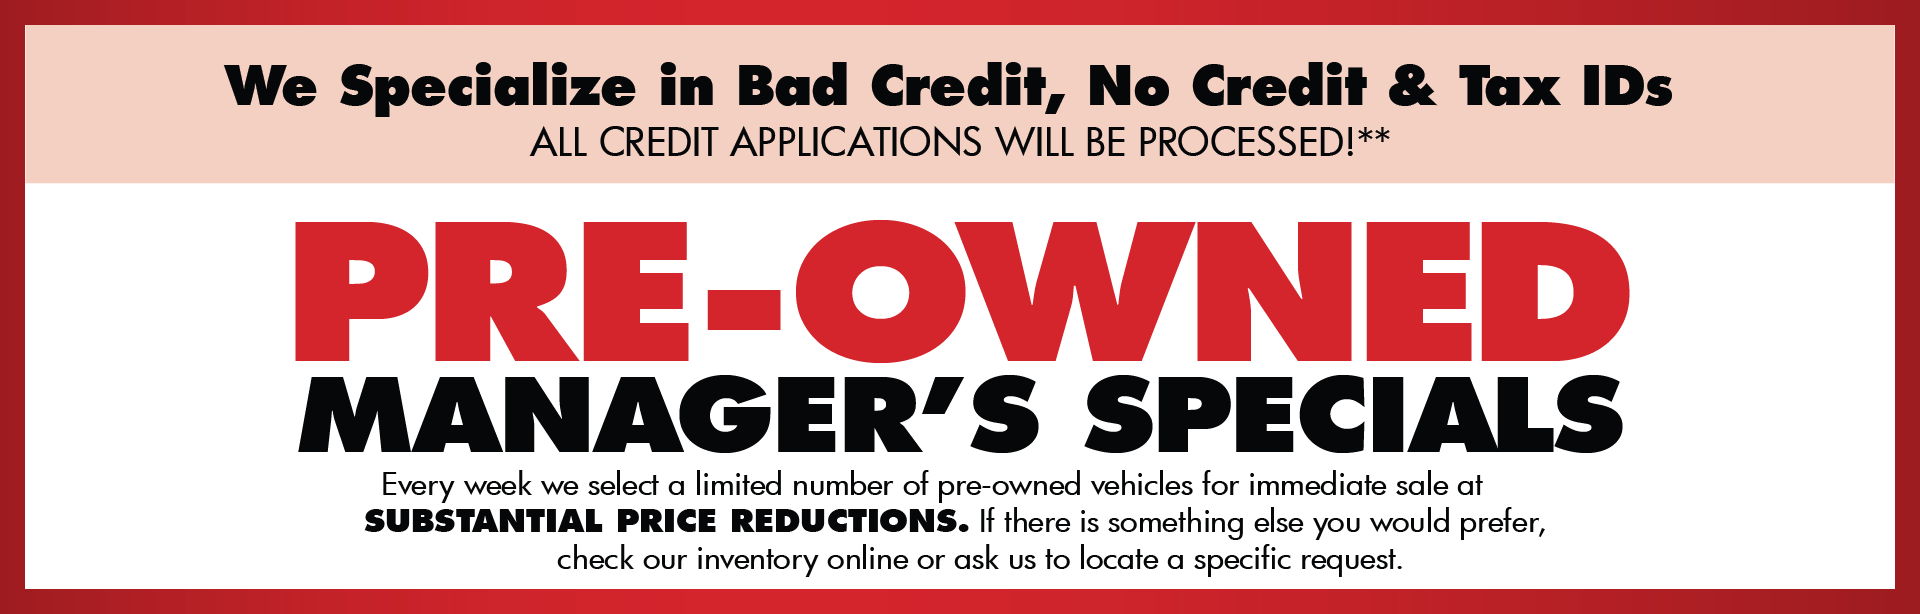 Pre-owned Manager Specials